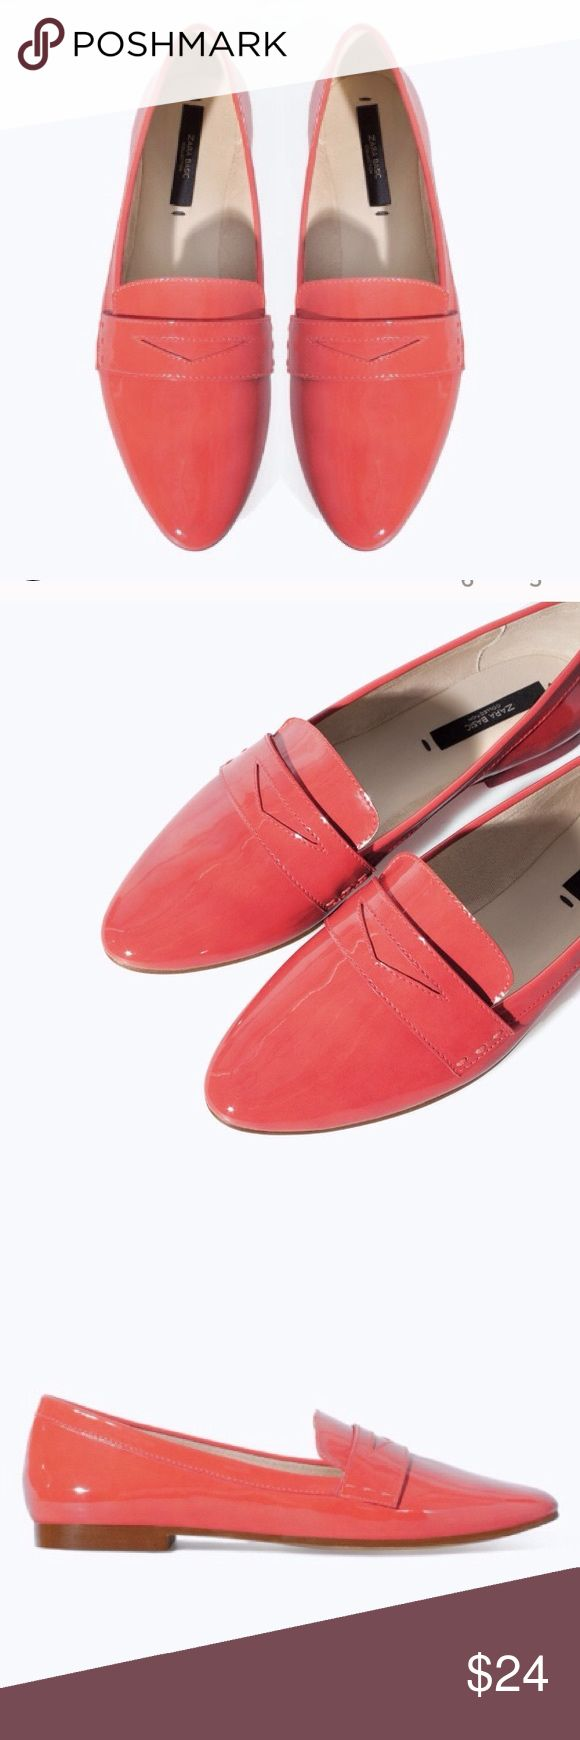 Zara coral Loafers Patent leather, coral colored Zara loafers, purchased here on Poshmark, but never worn. I do NOT like the way my feet look in them!! Zara Shoes Flats & Loafers